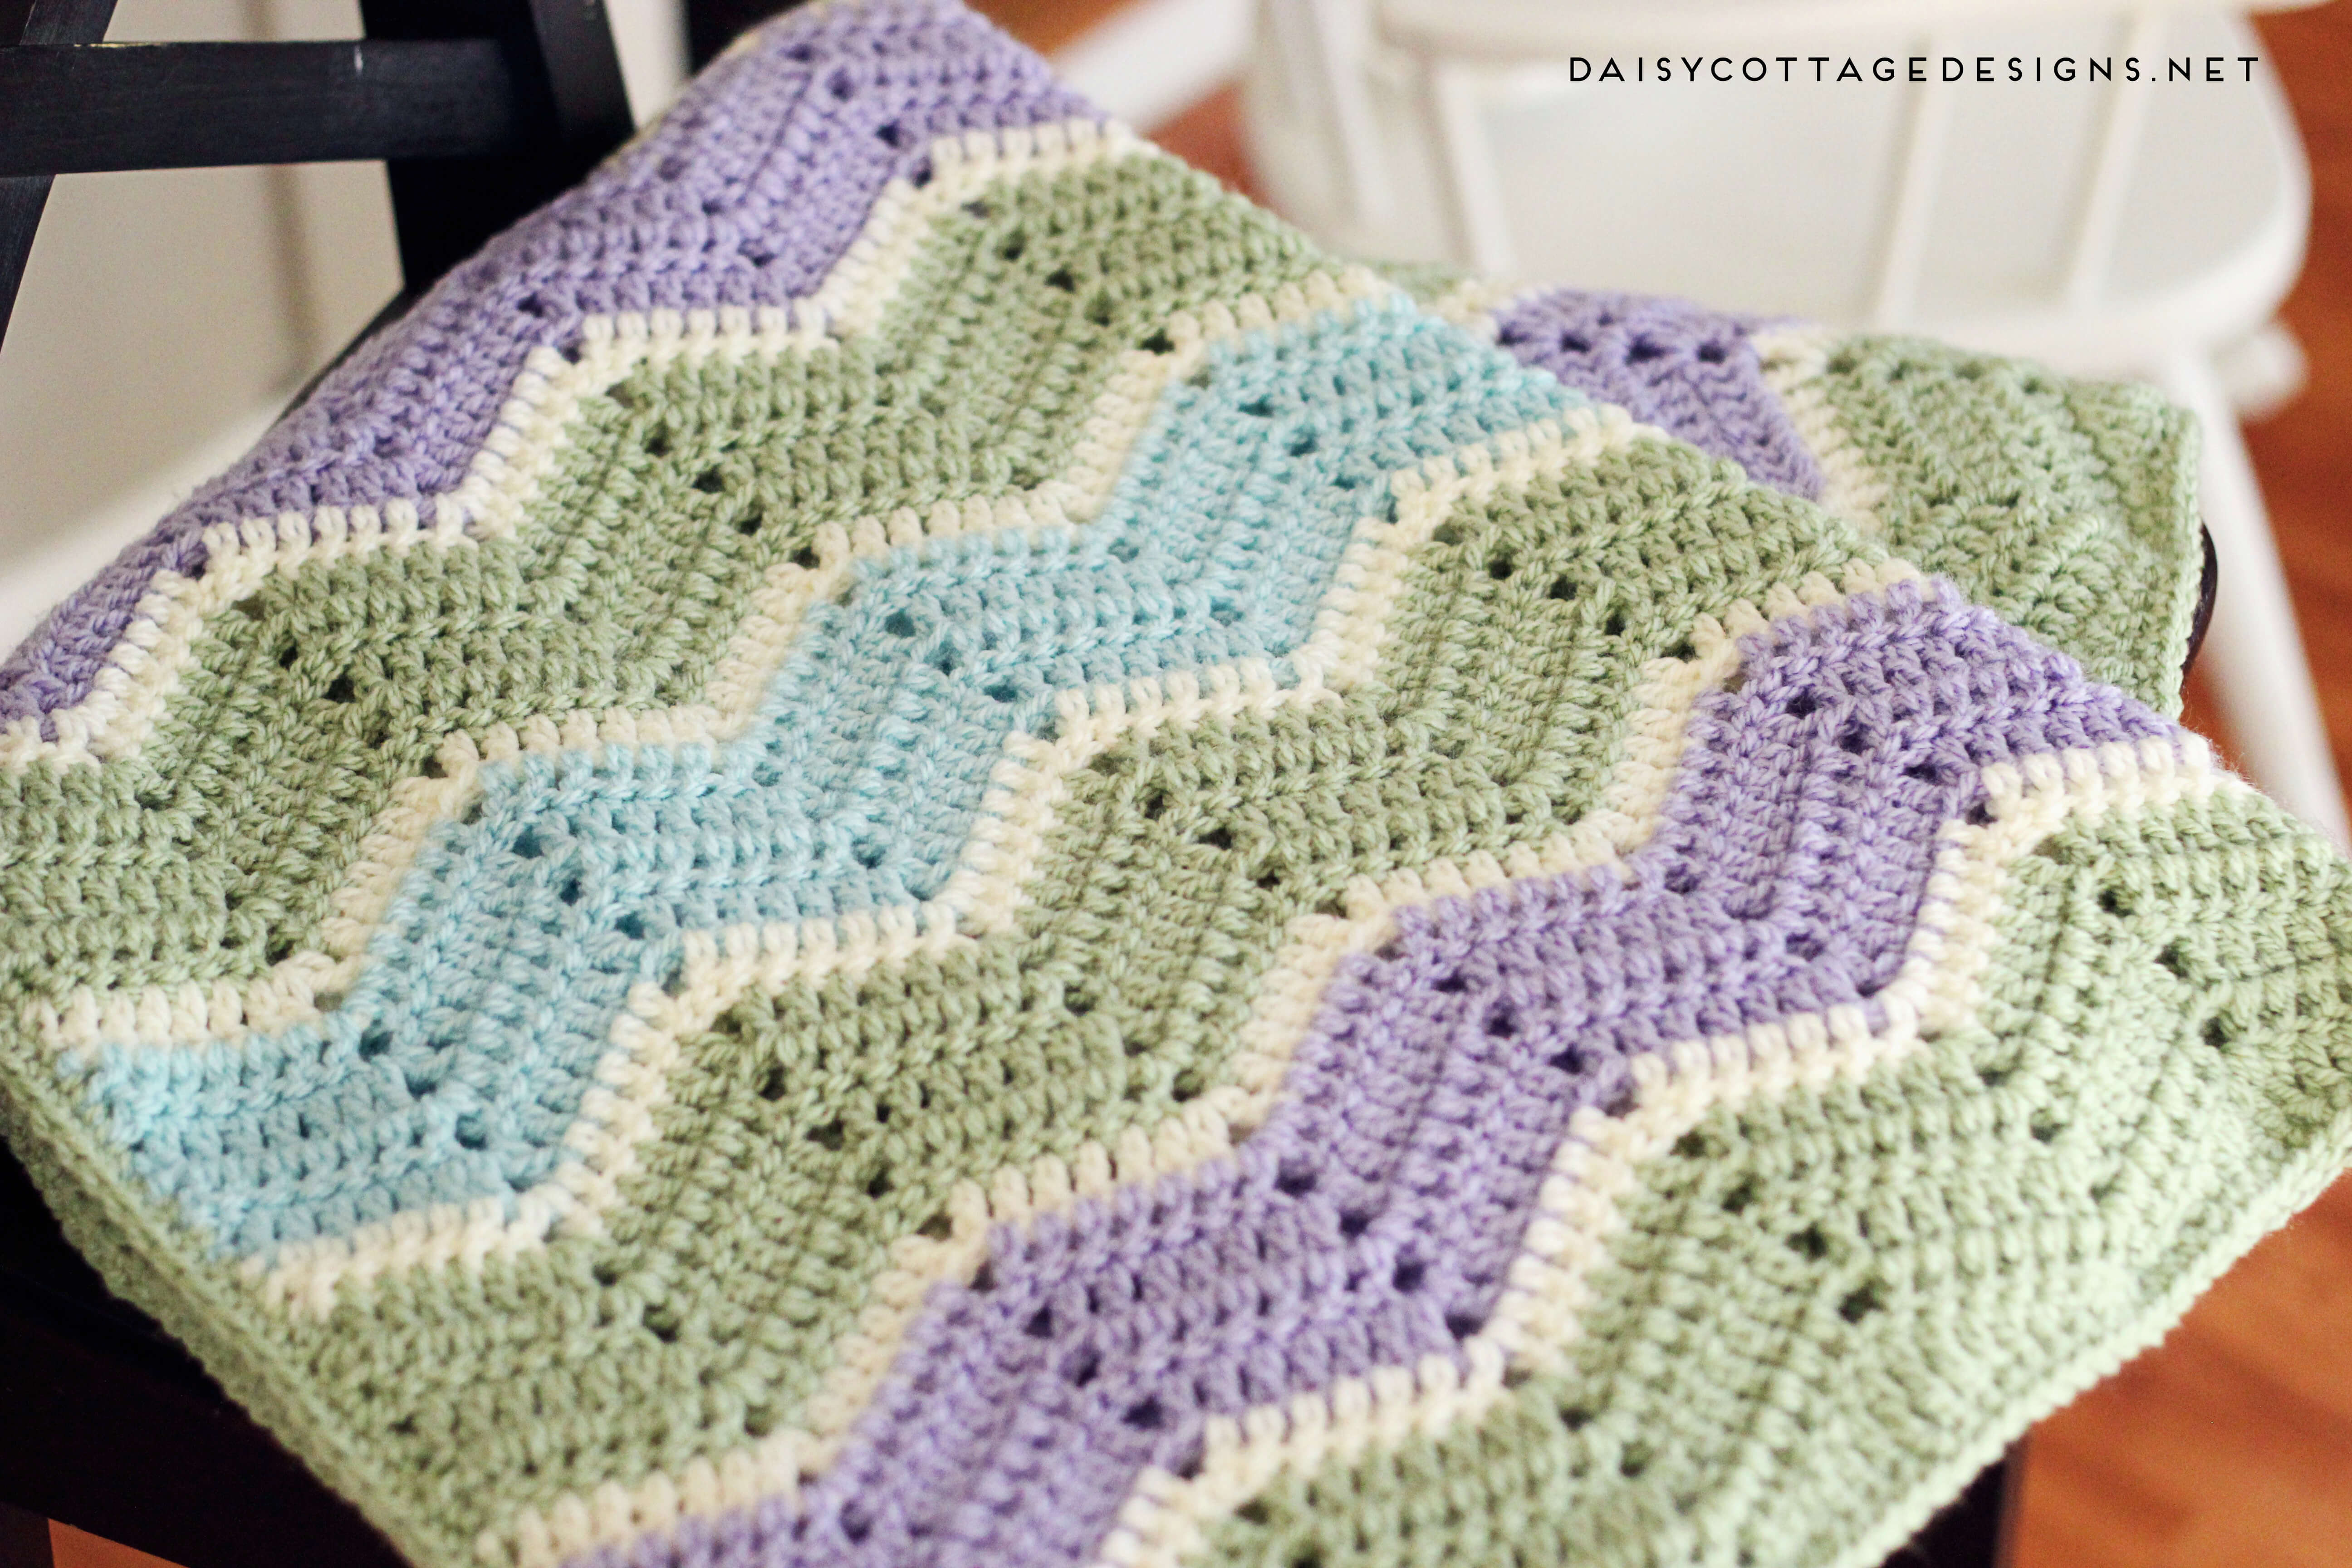 Crochet Patterns Awesome Ripple Blanket Crochet Pattern Daisy Cottage Designs Of Charming 50 Models Crochet Patterns